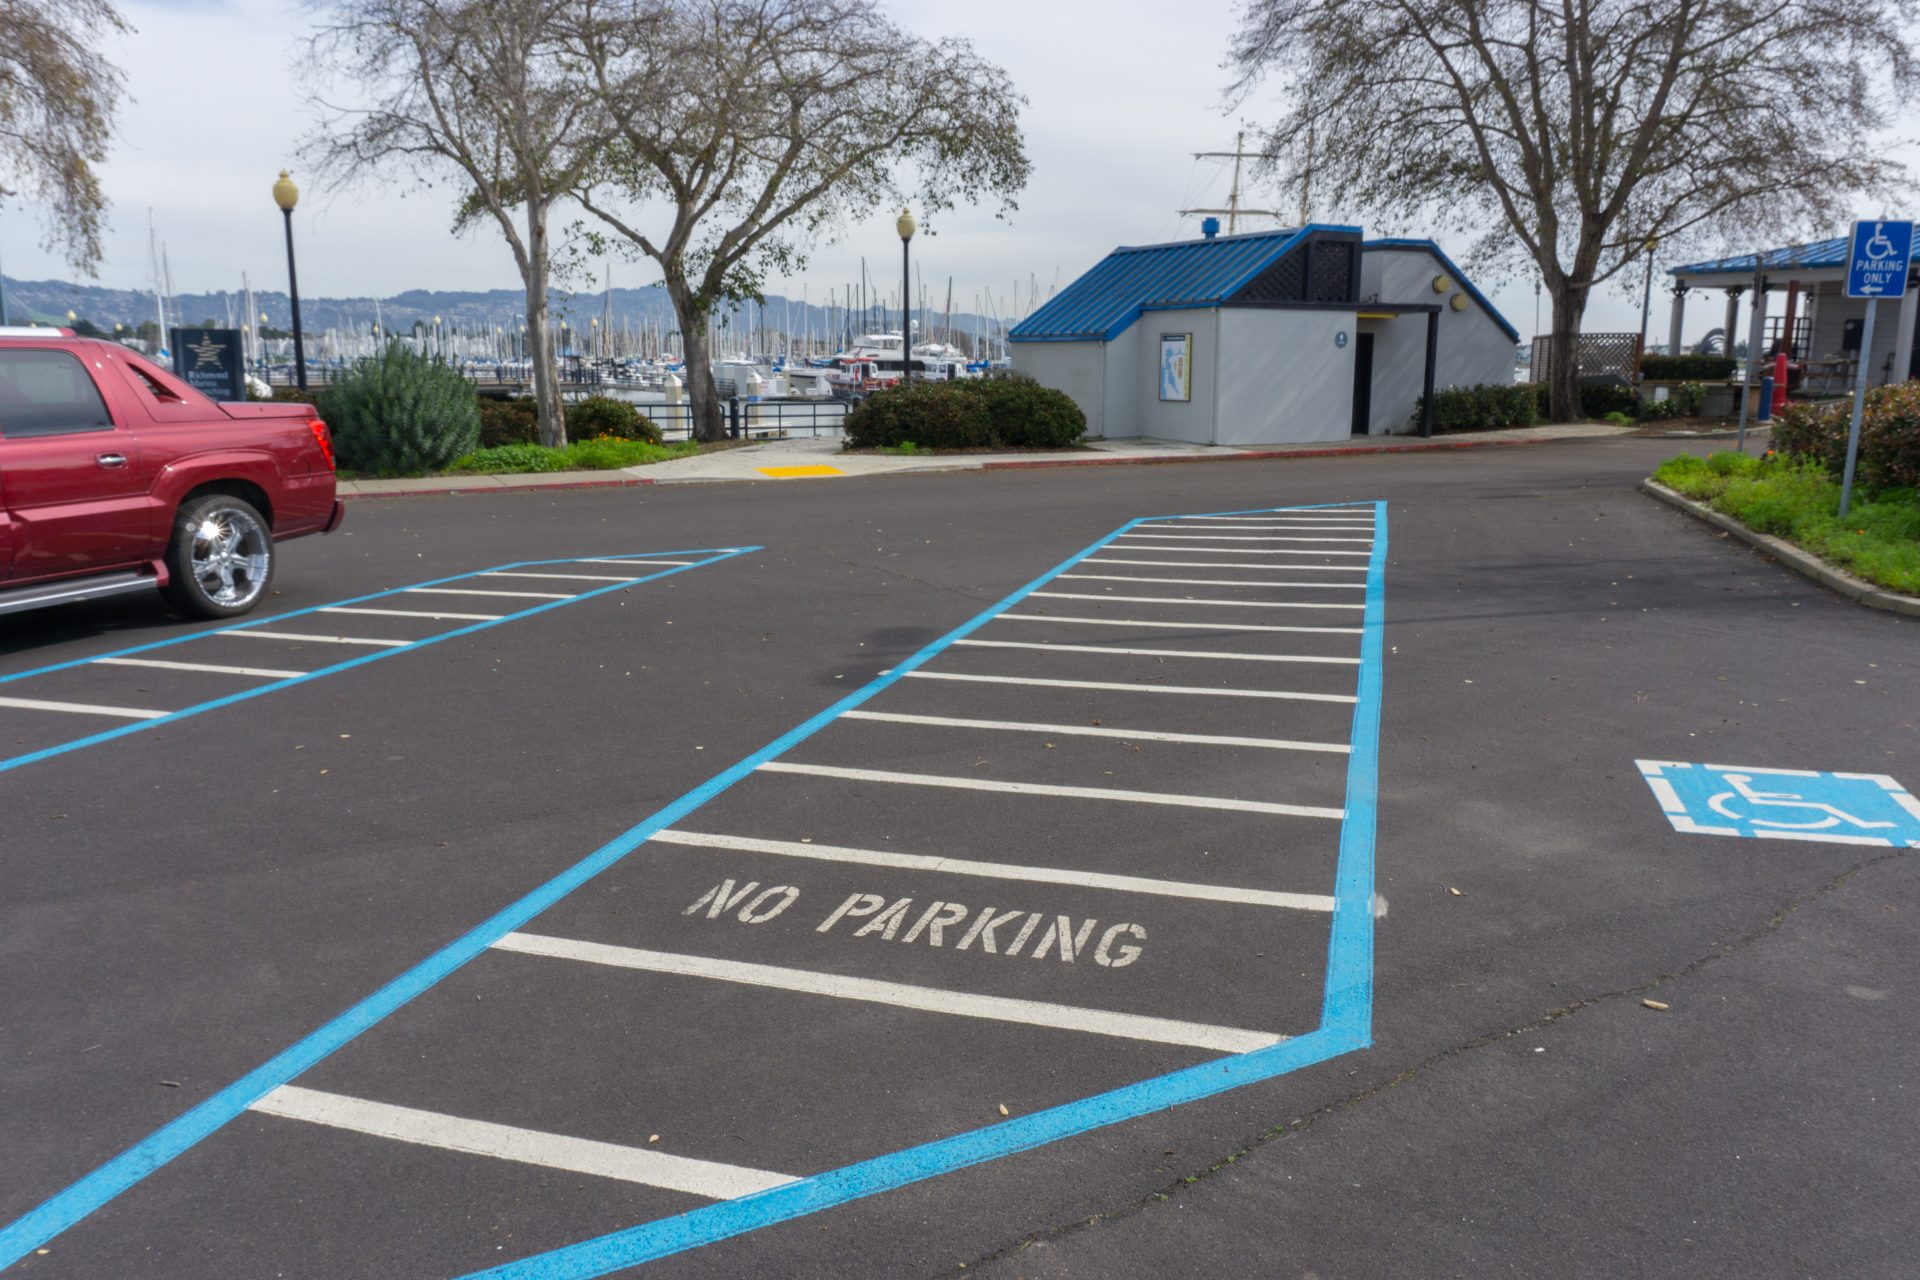 Two extra long accessible parking spots